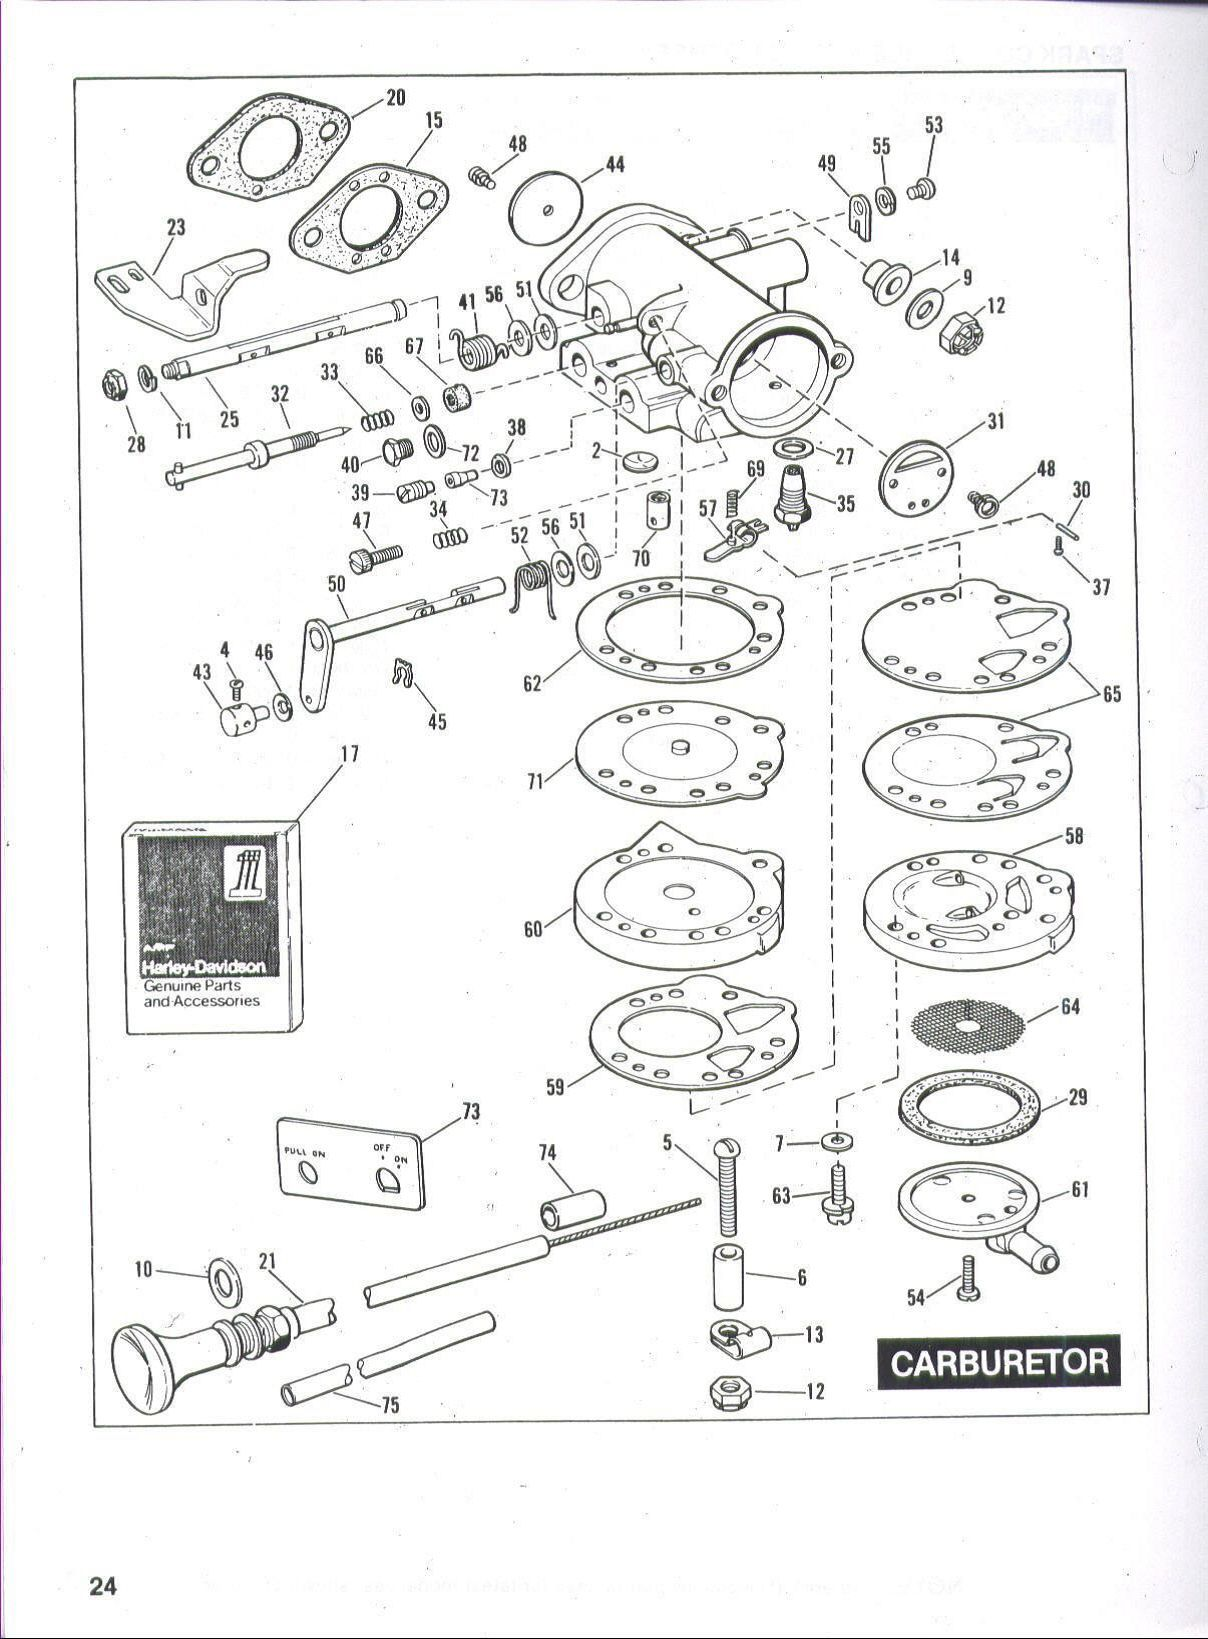 5176dbb44702a1adc4080edf7301936d harley davidson golf cart carburetor diagram utv stuff westinghouse golf cart wiring diagram at gsmx.co